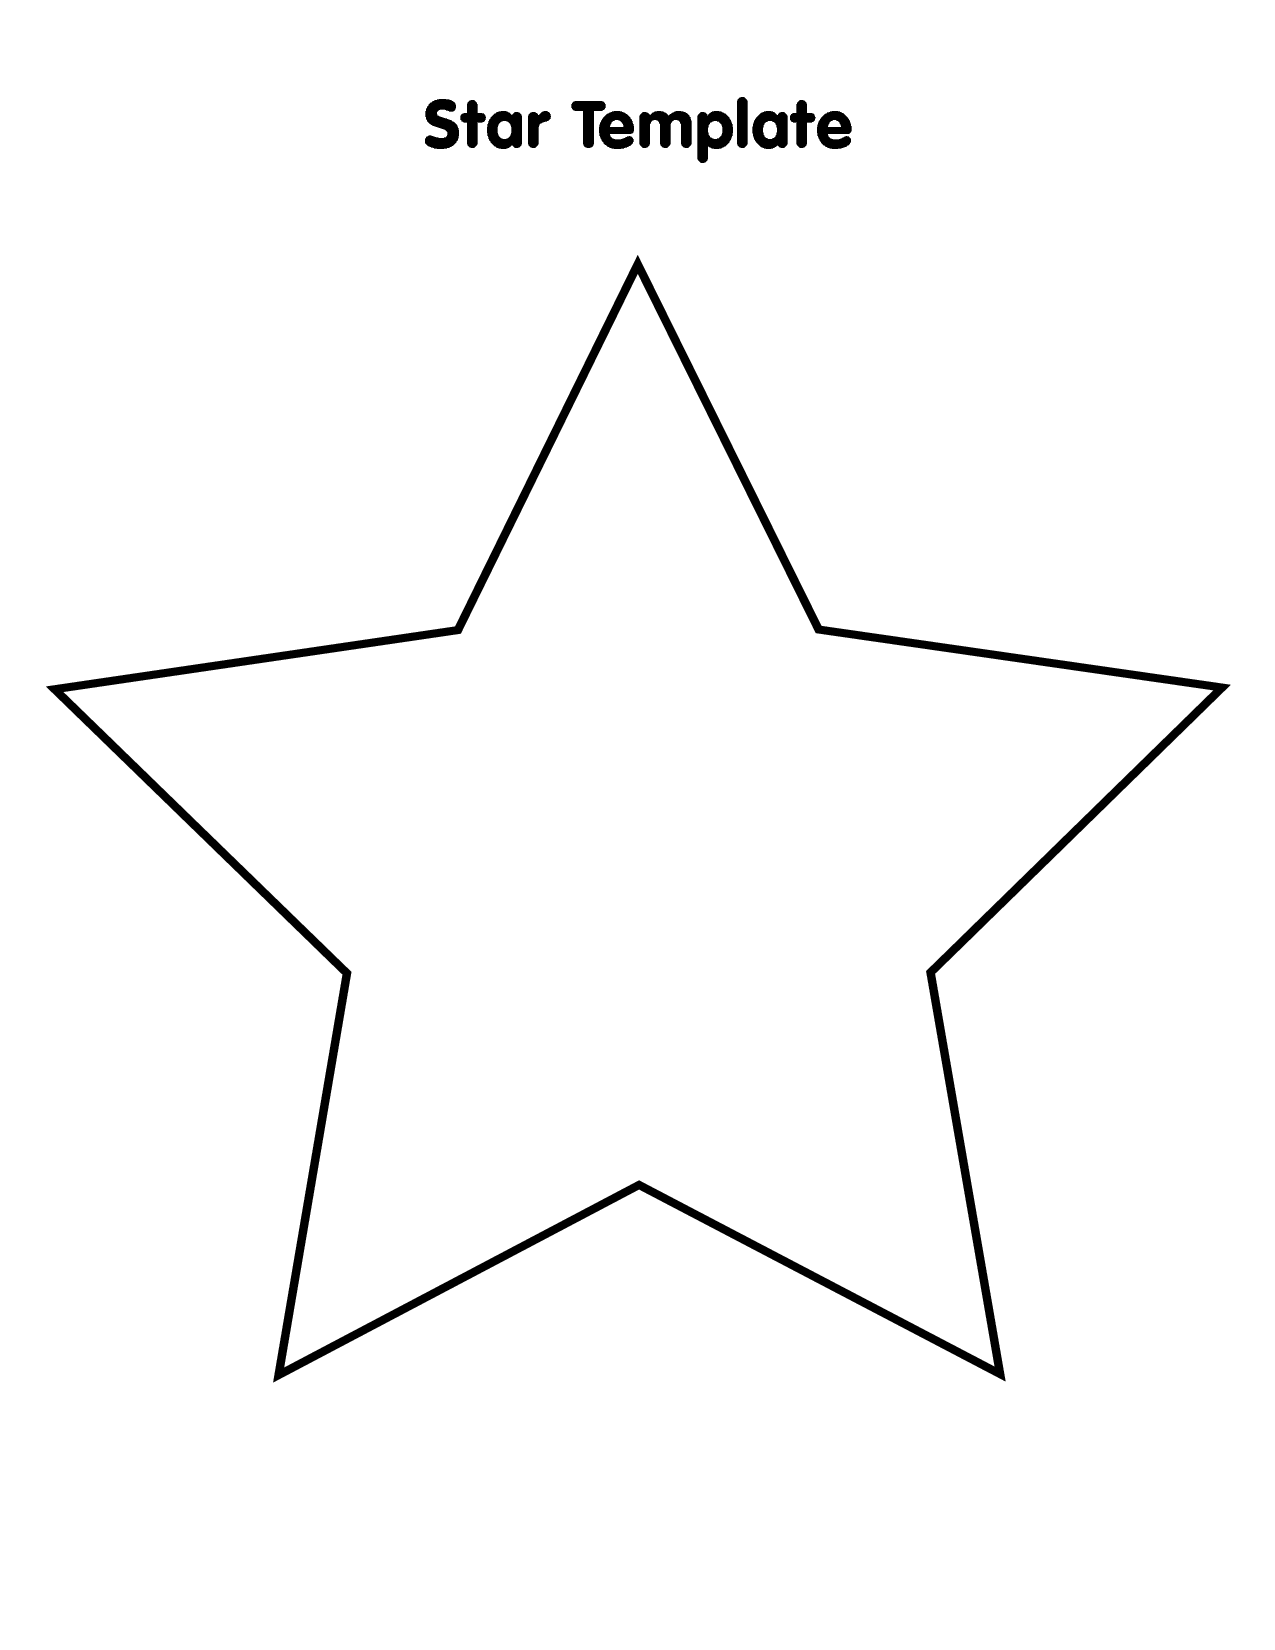 small star template printable free - 5 best images of large star stencil printable large star